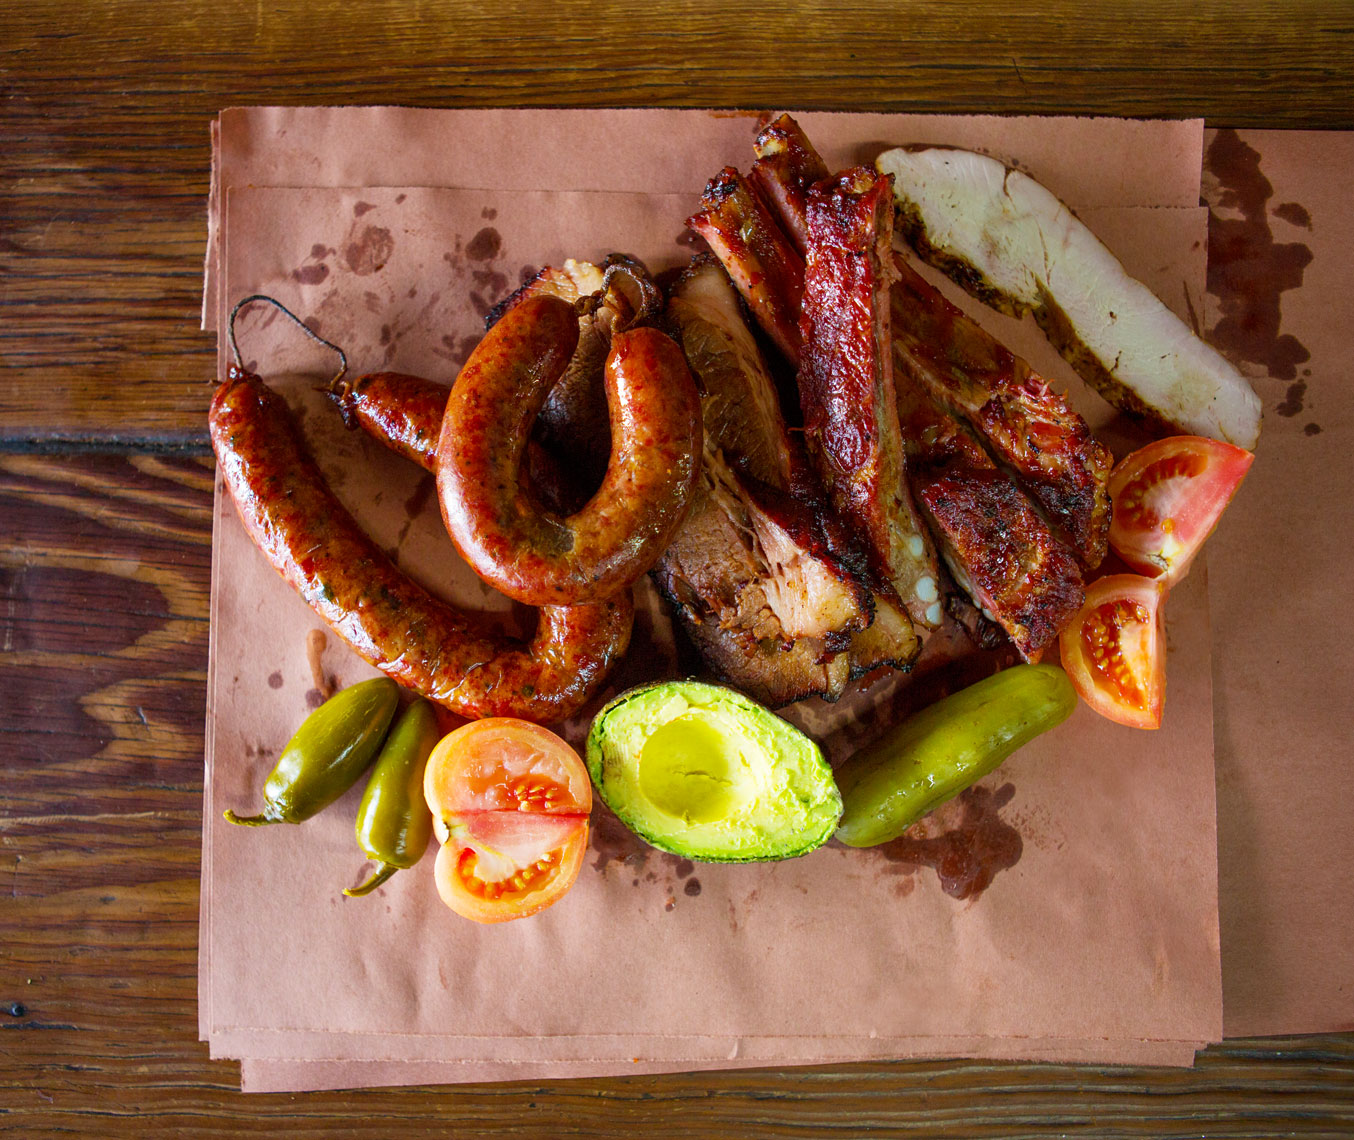 04_Kris_Davidson_Lonely_Planet_Las_Barbecue_Lockhart_Texas